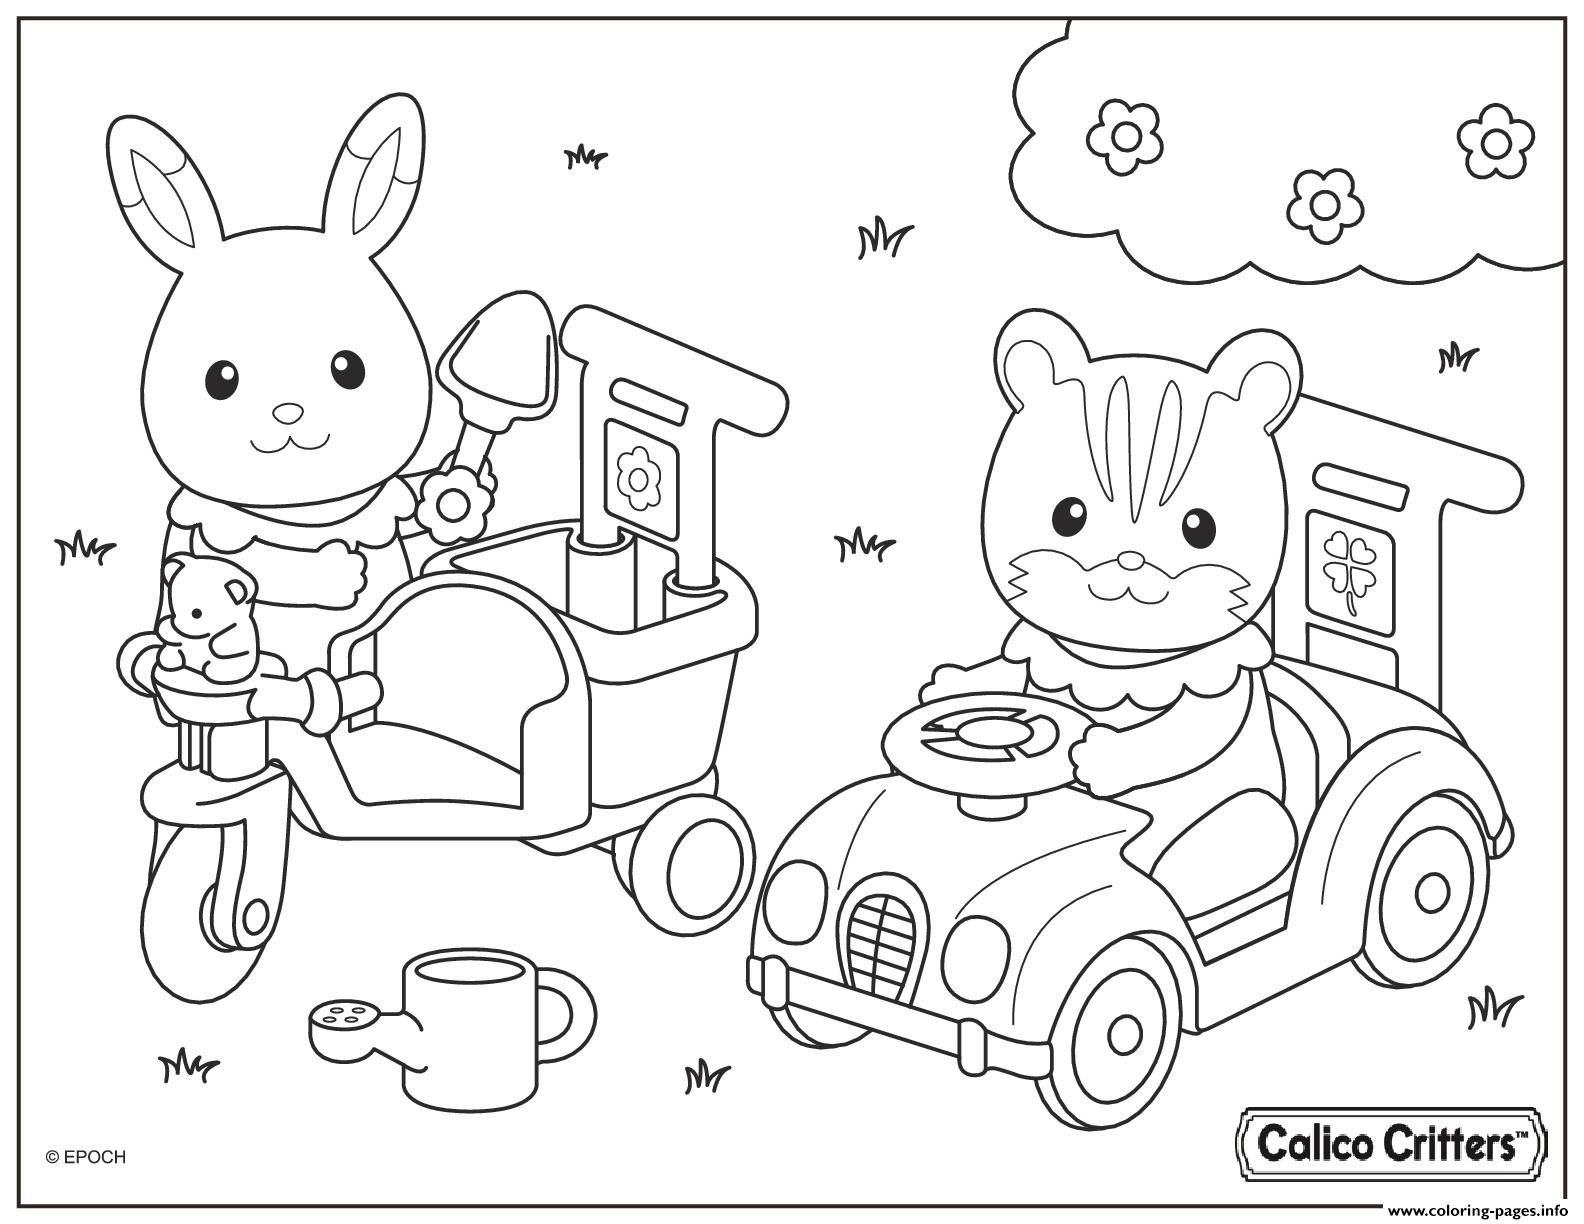 Calico critters drive car with friend coloring pages printable for Little critter coloring pages